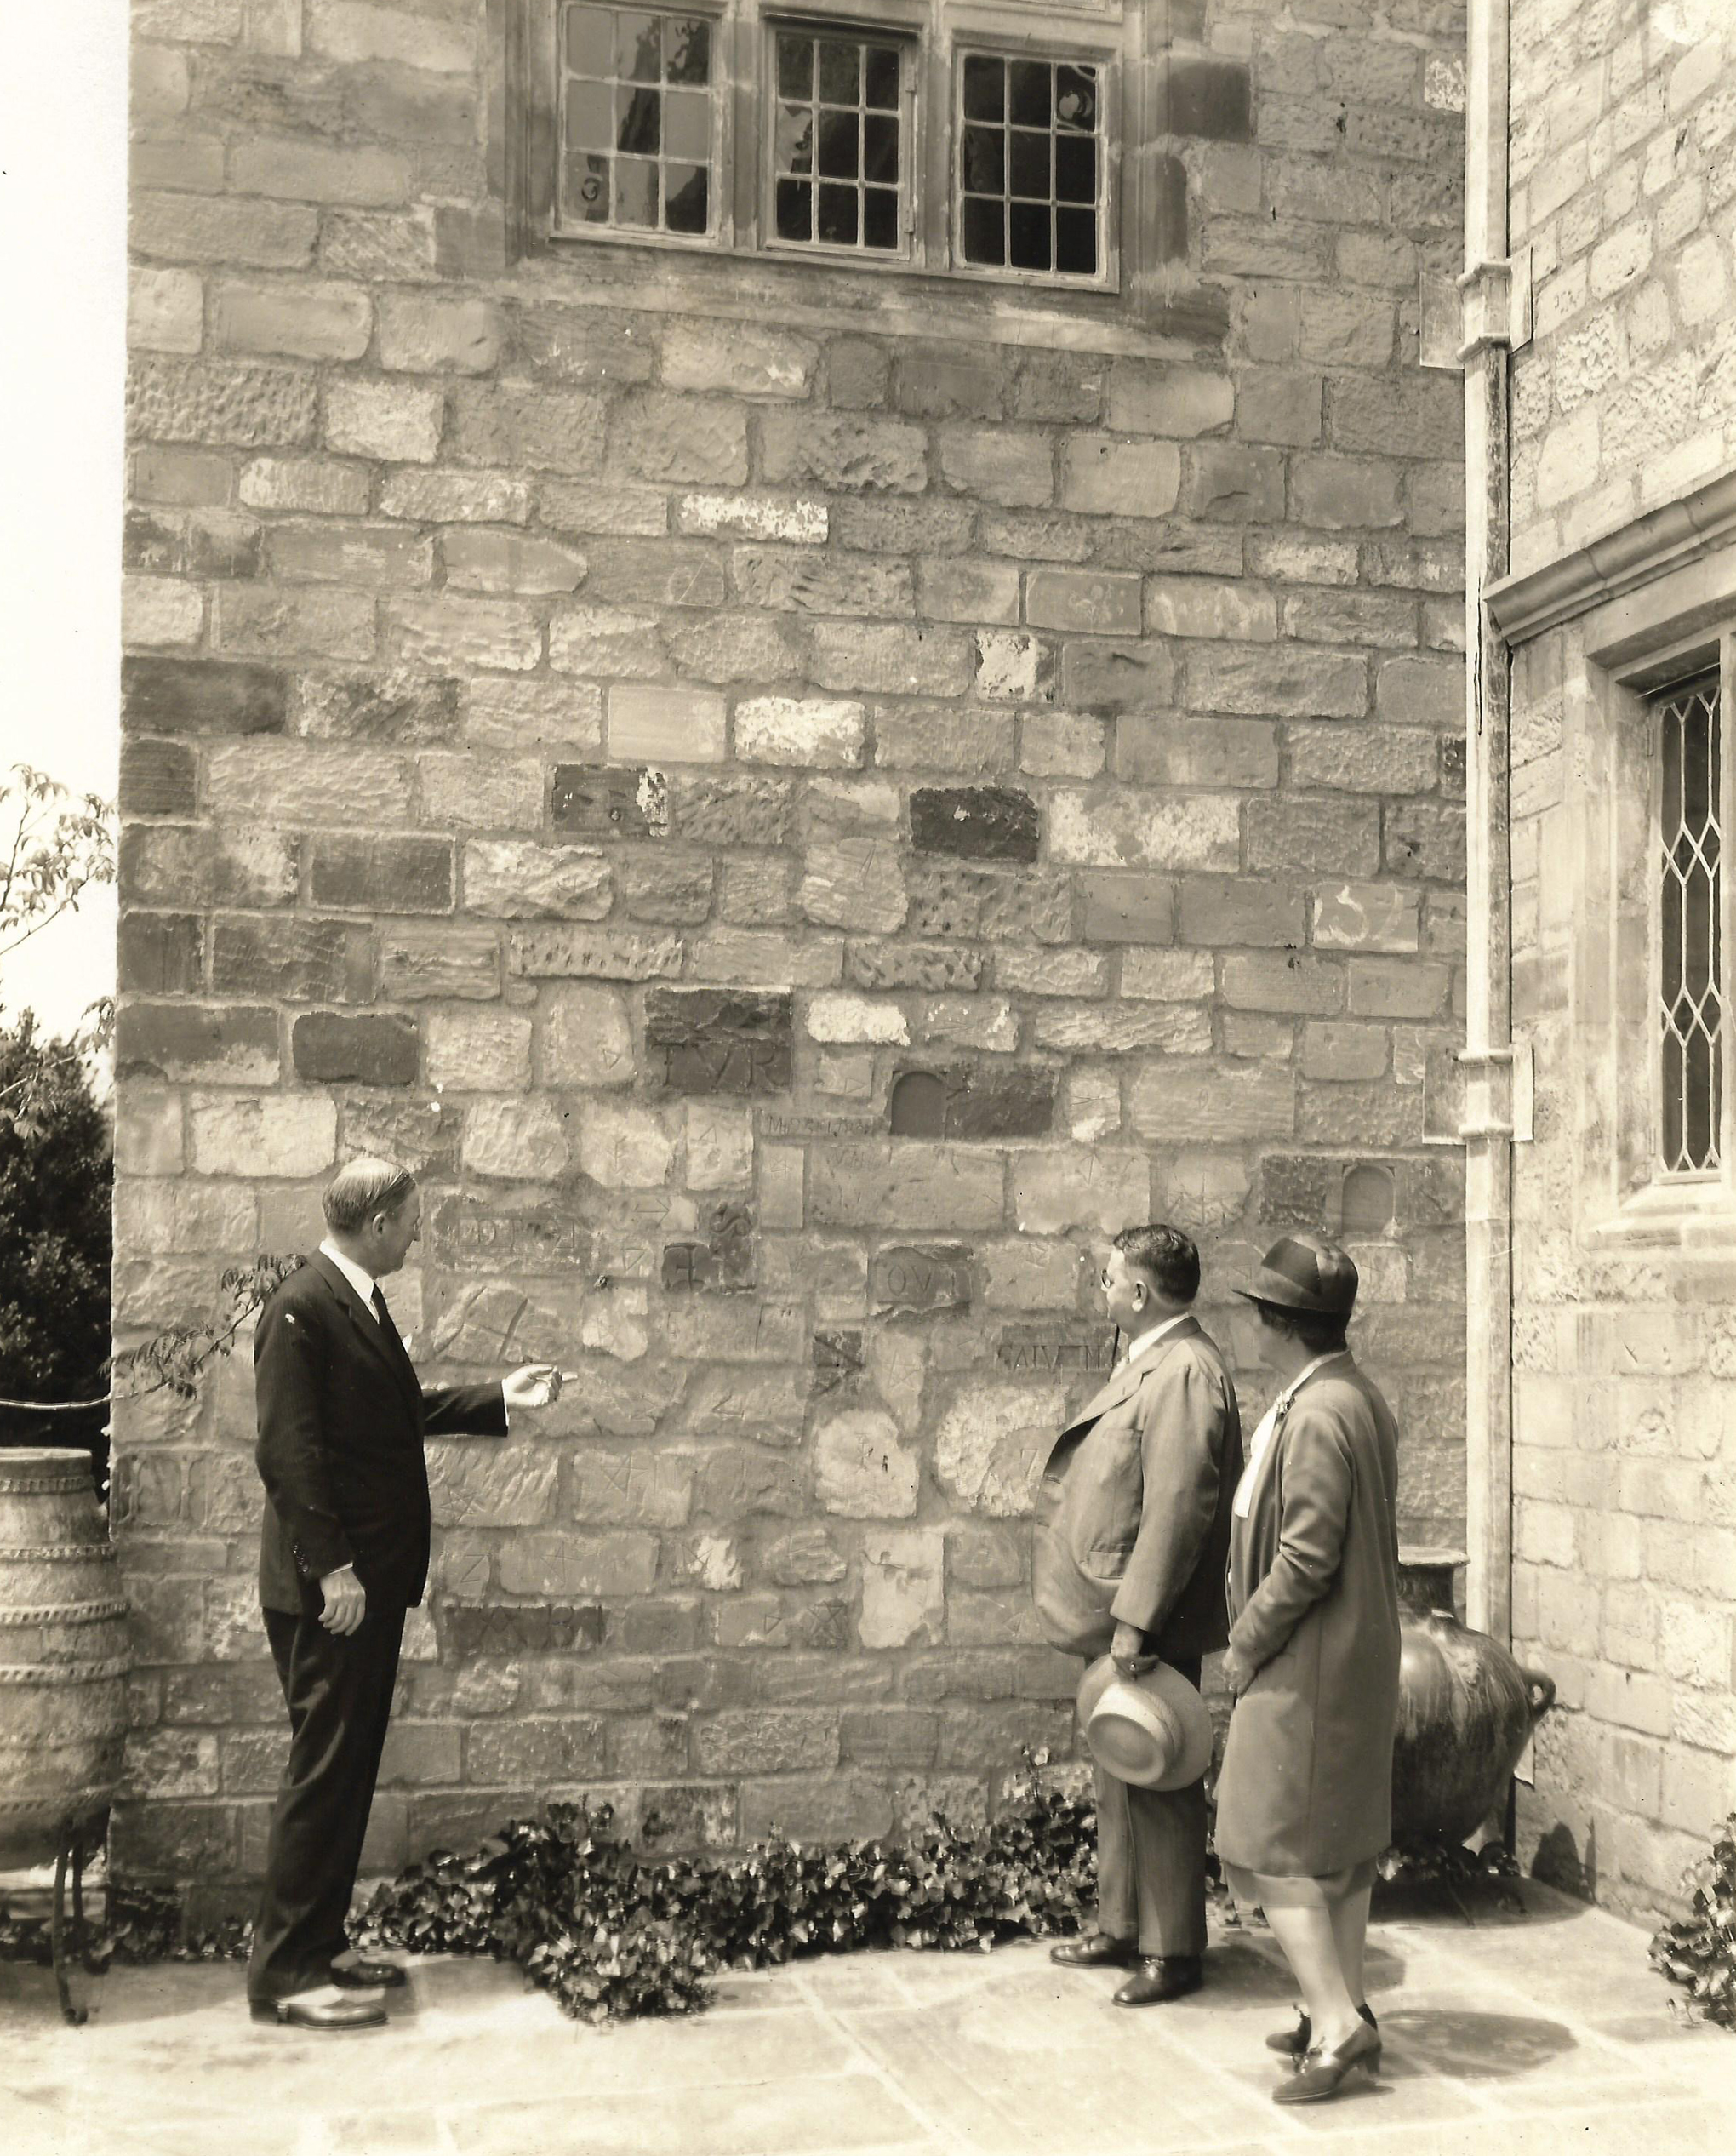 Alexander Weddell Showing Mason's Marks on the Outside Wall of Virginia House, East Facade, Archival Image Courtesy of the Virginia Museum of History and Culture